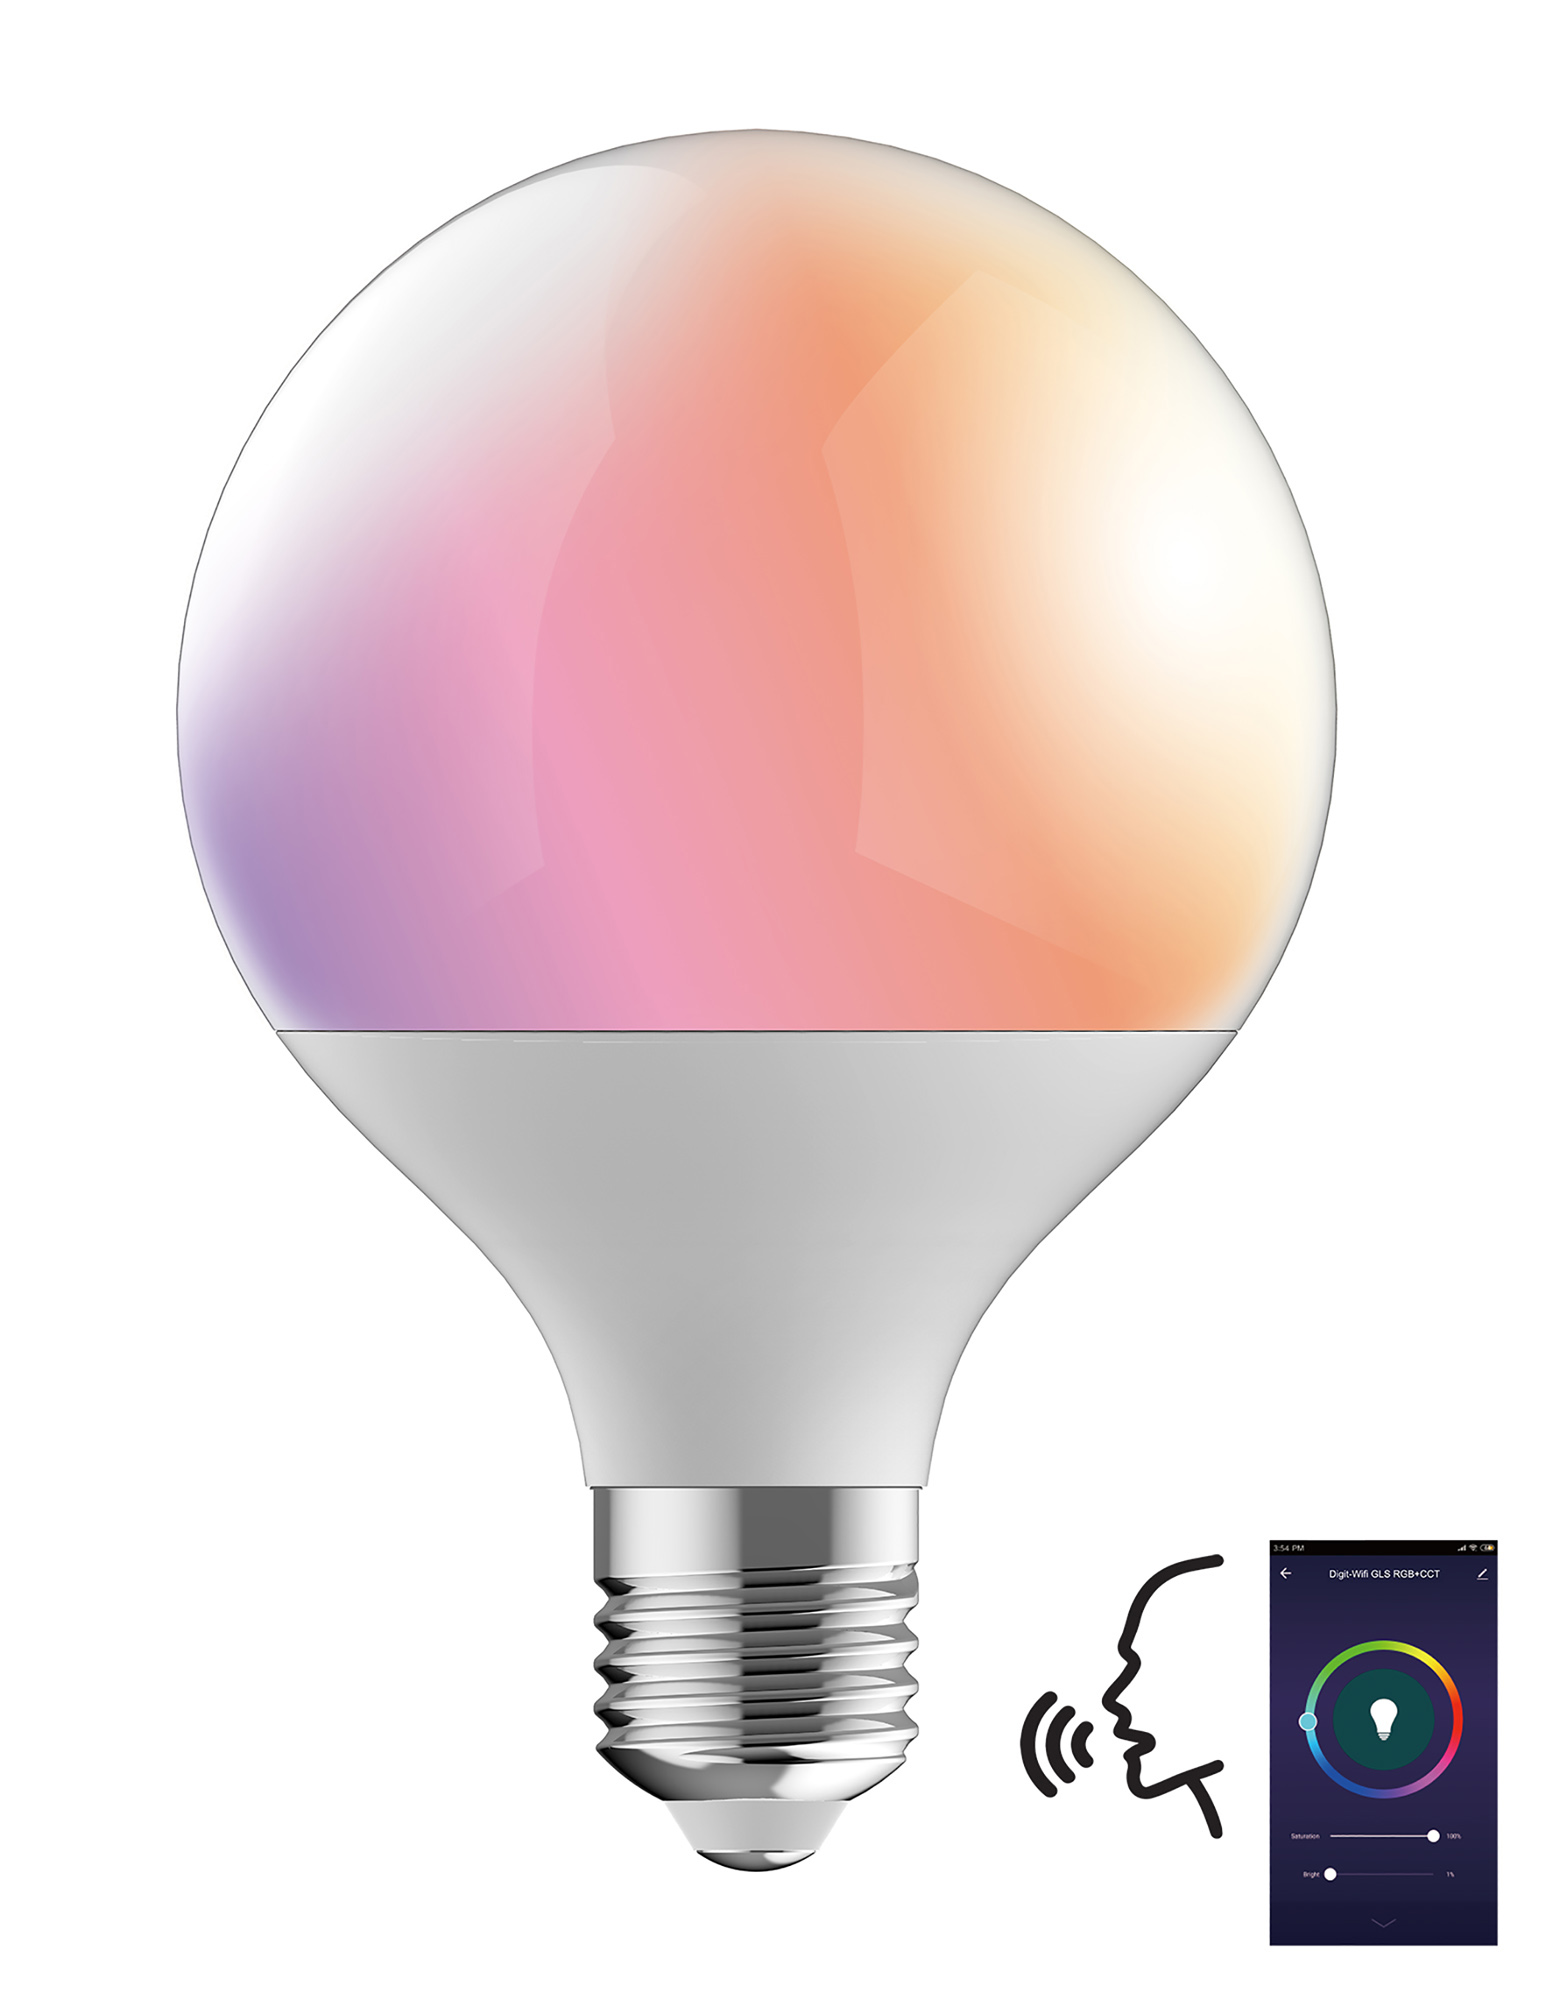 Digit Wi-Fi LED Lamps Luxram Globes